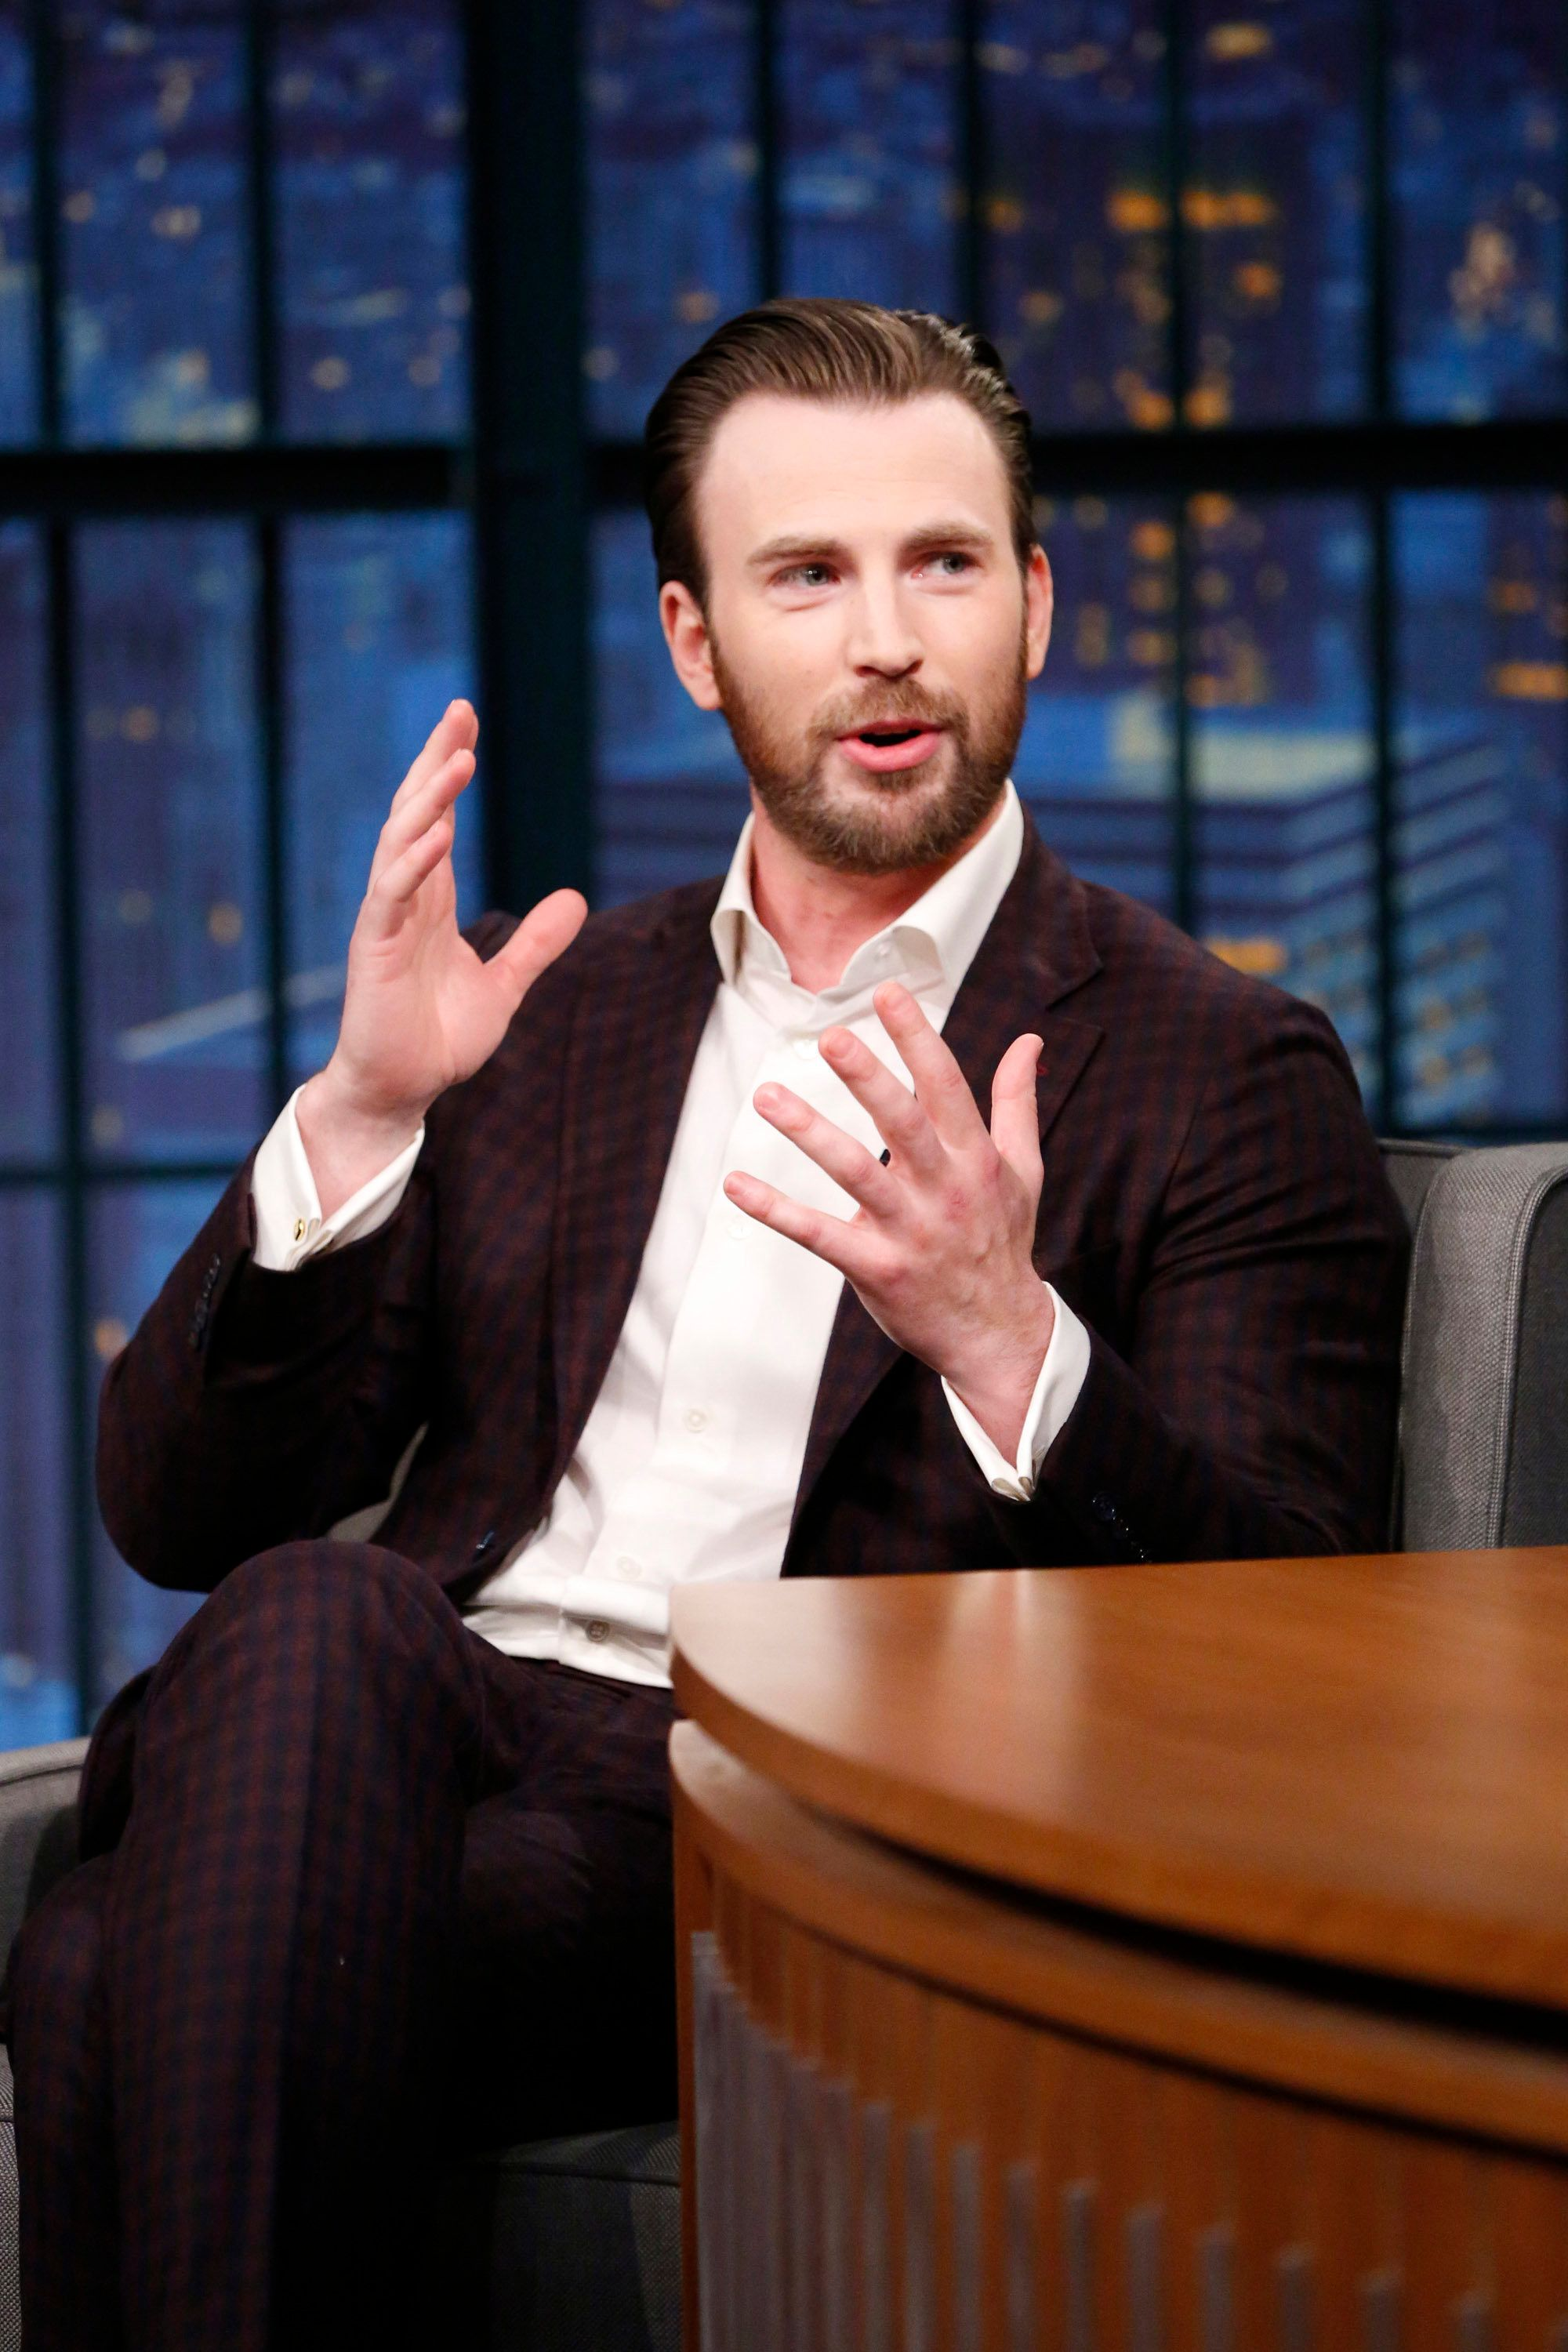 LATE NIGHT WITH SETH MEYERS -- Episode 514 -- Pictured: Actor Chris Evans during an interview on April 5, 2017 -- (Photo by: Lloyd Bishop/NBC)